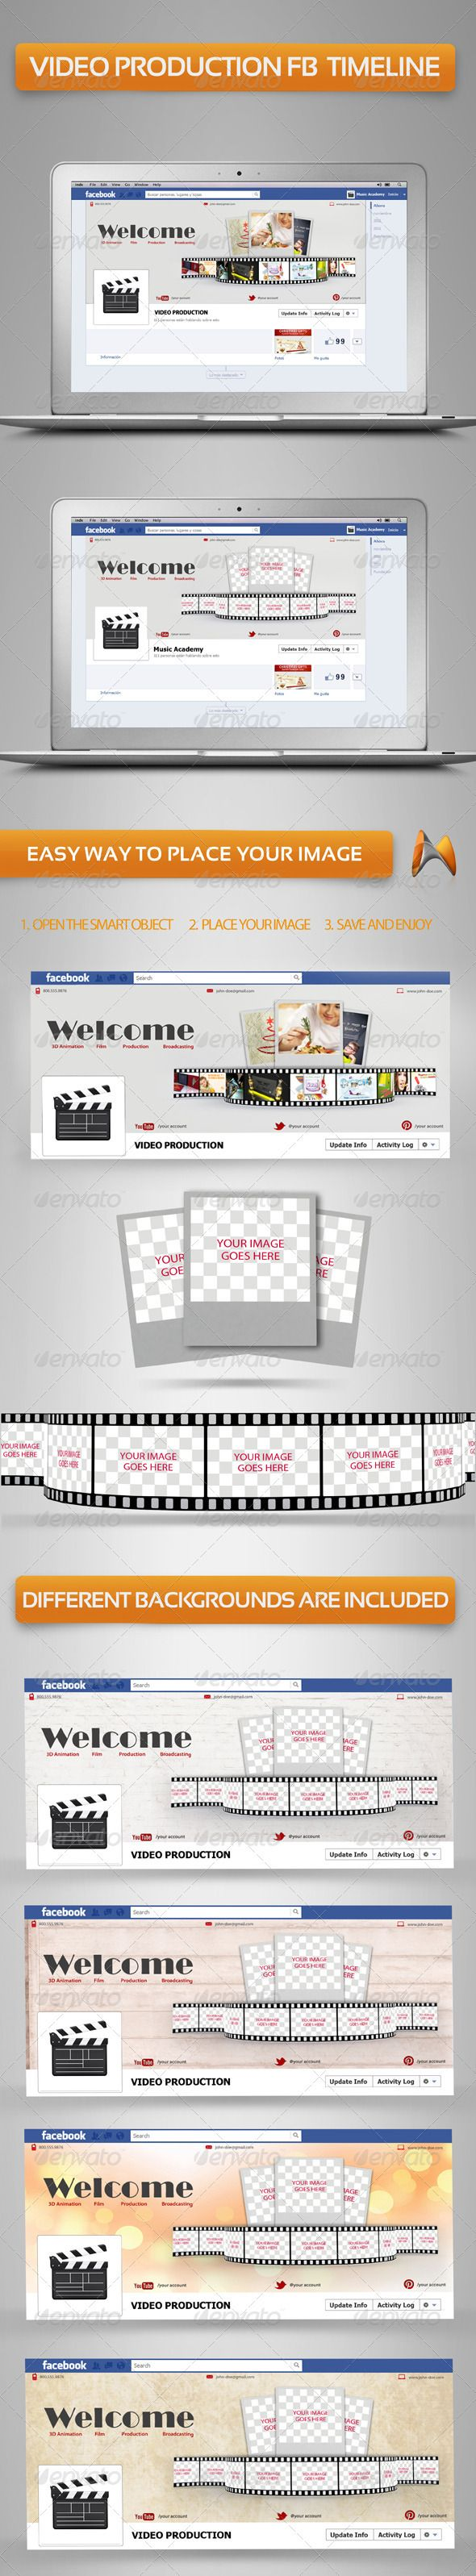 Video Production Fb Timeline Video Production Timeline And - Video production timeline template